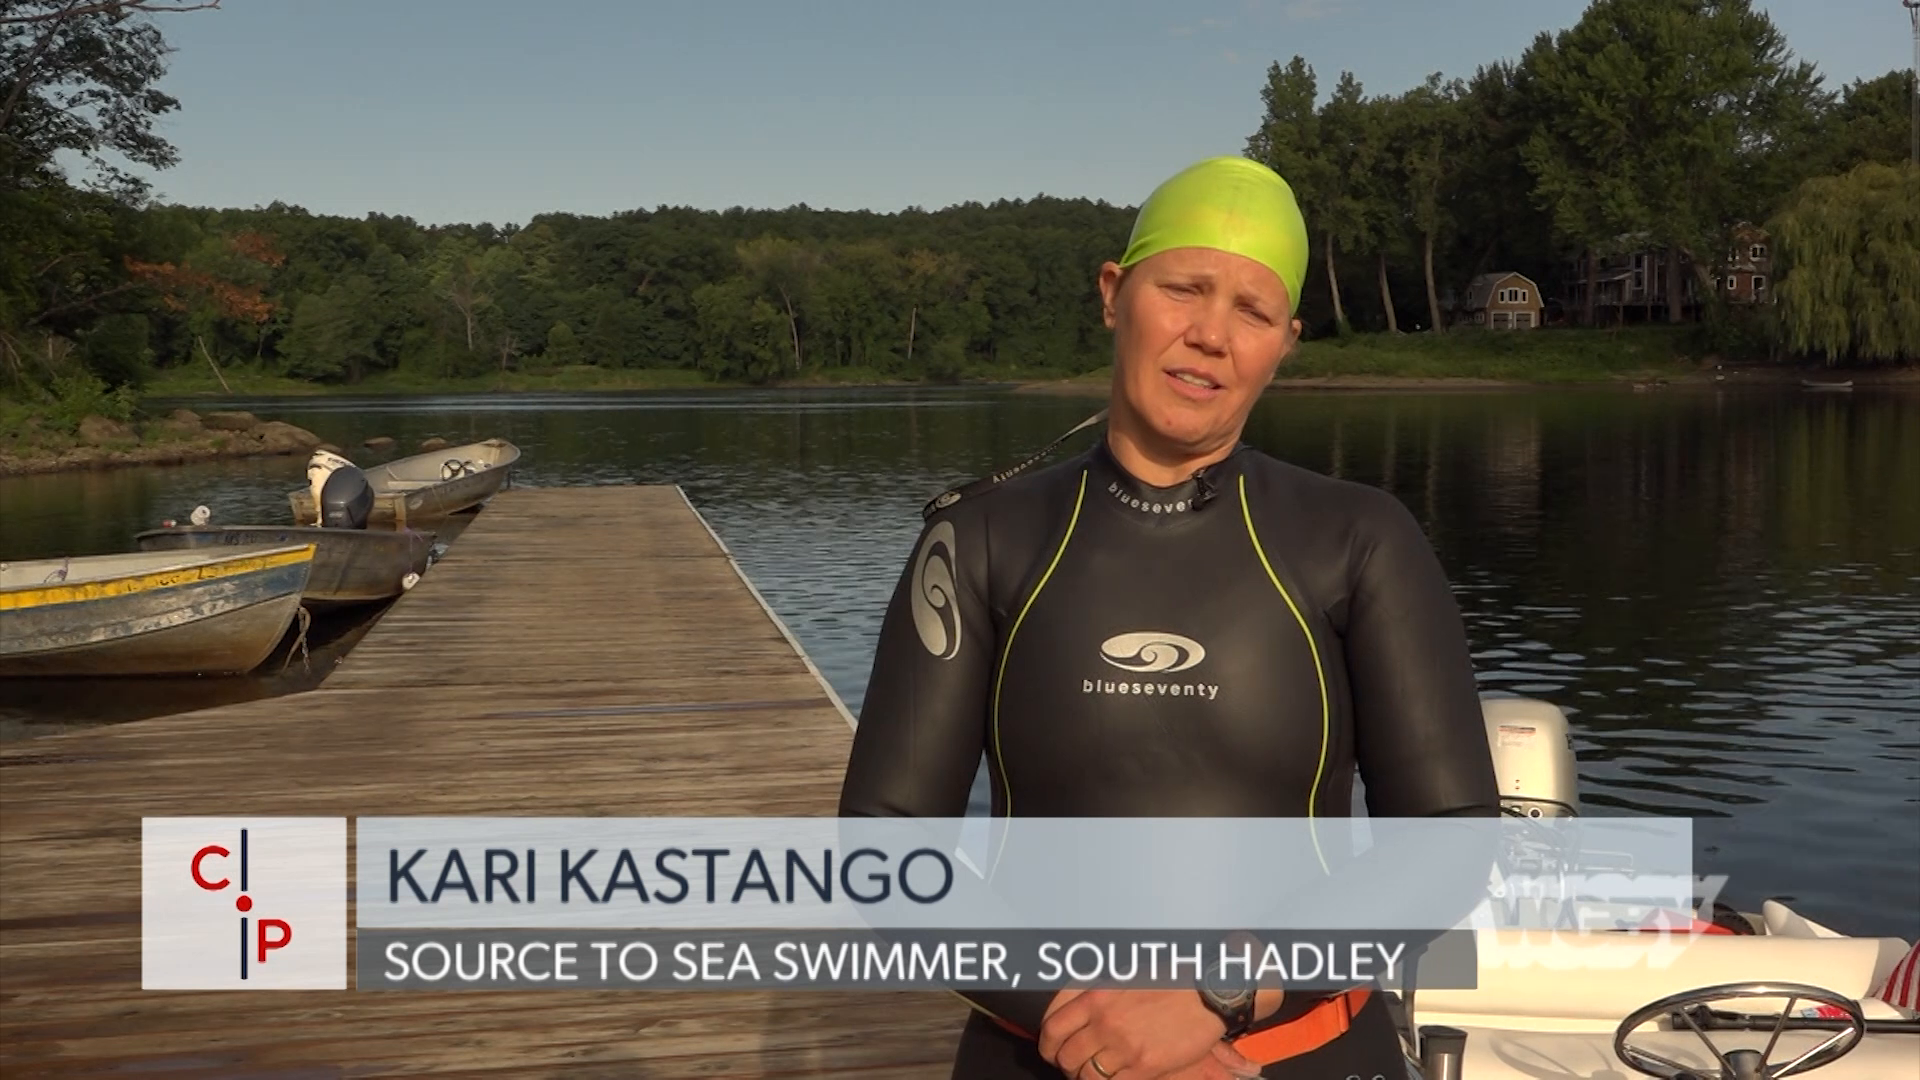 To raise awareness about a natural resource right in our backyards, Kari Kastango is attempting to swim the entire length of the Connecticut River.